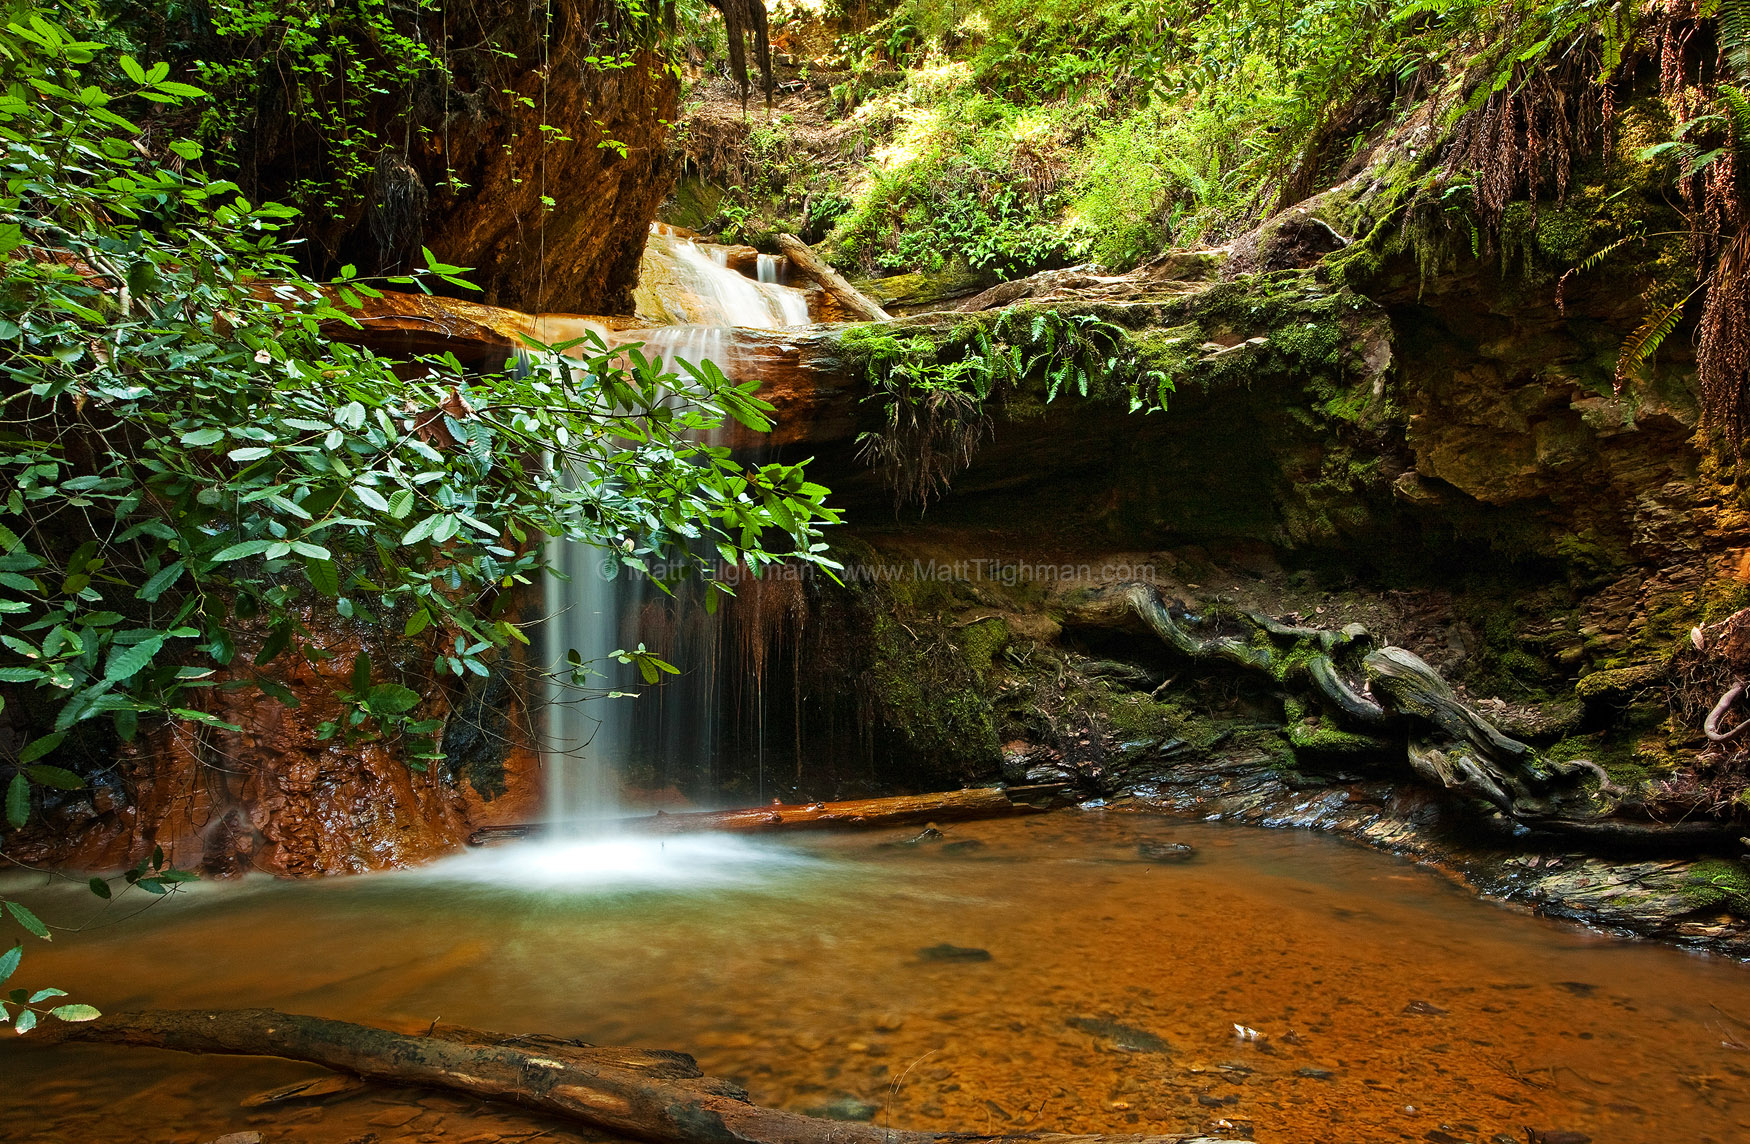 Fine art stock landscape photograph of Lower Golden Cascade, a small peaceful waterfall in Big Basin Redwoods State Park, California